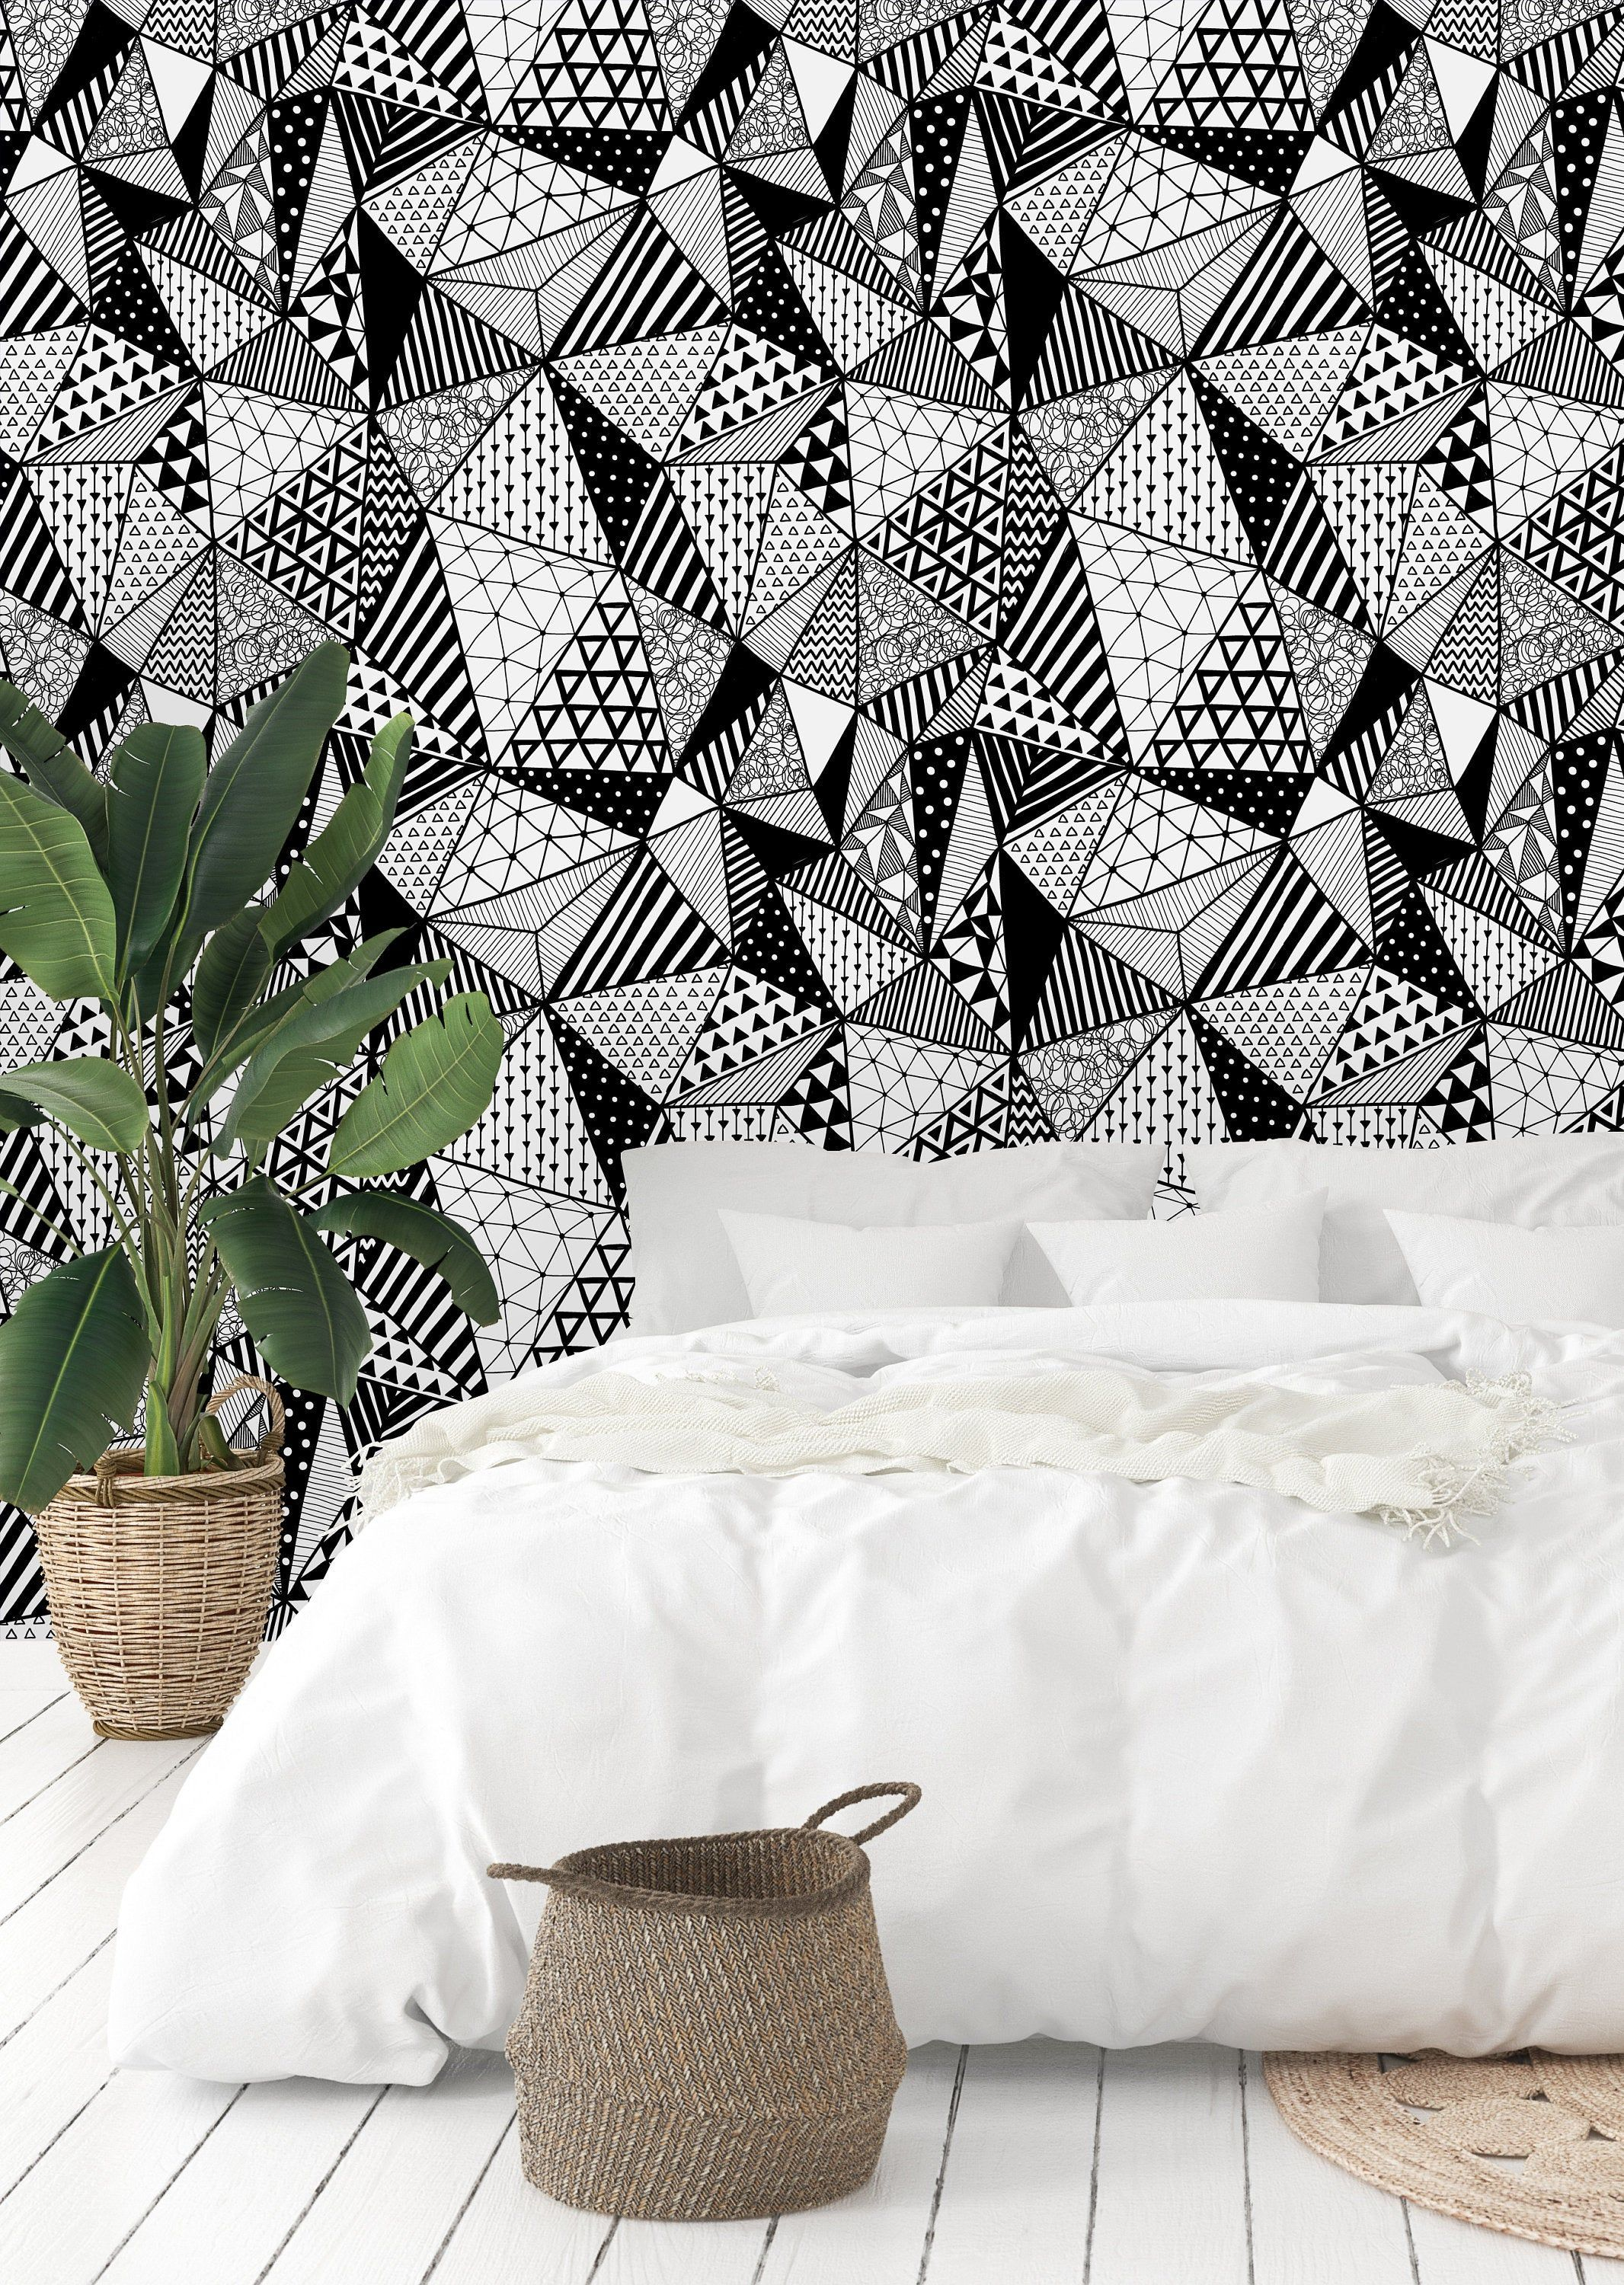 Black And White Geometric Shapes Removable Wallpaper Peel And Etsy Wall Murals Removable Wallpaper Wall Wallpaper